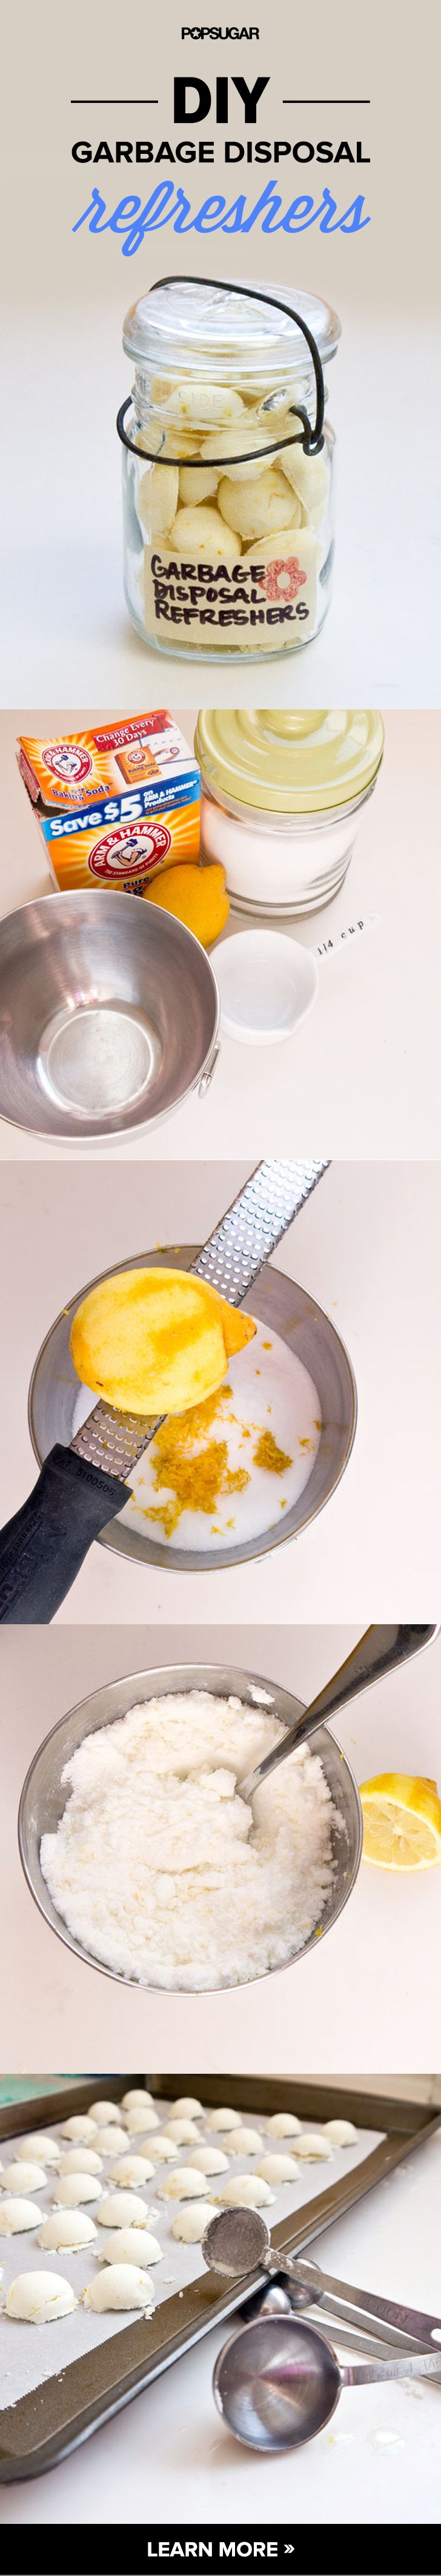 Easy Cleaning Hacks for the Kitchen Sink | Garbage Disposal Refreshers | DIY Projects & Crafts by DIY JOY at http://diyjoy.com/cleaning-tips-life-hacks